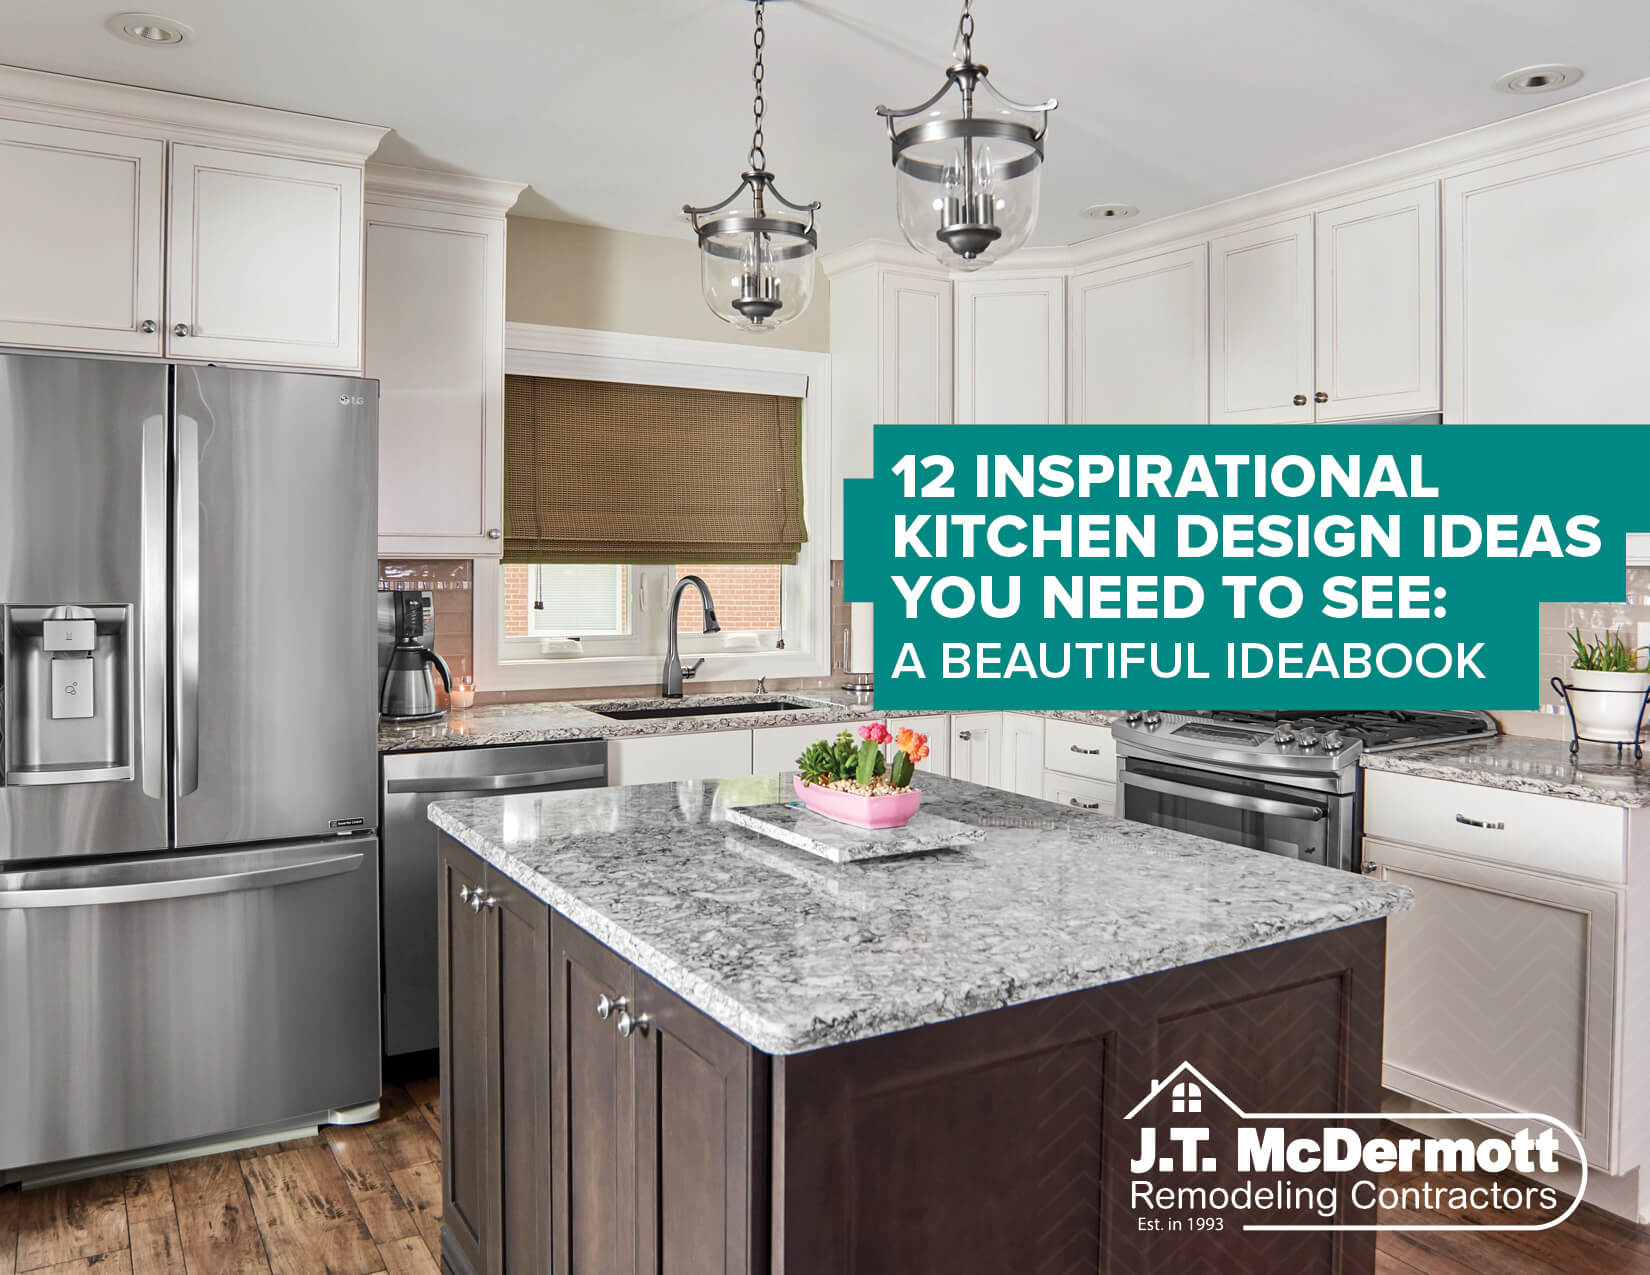 Kitchens designs idea preferred home design for See kitchen designs